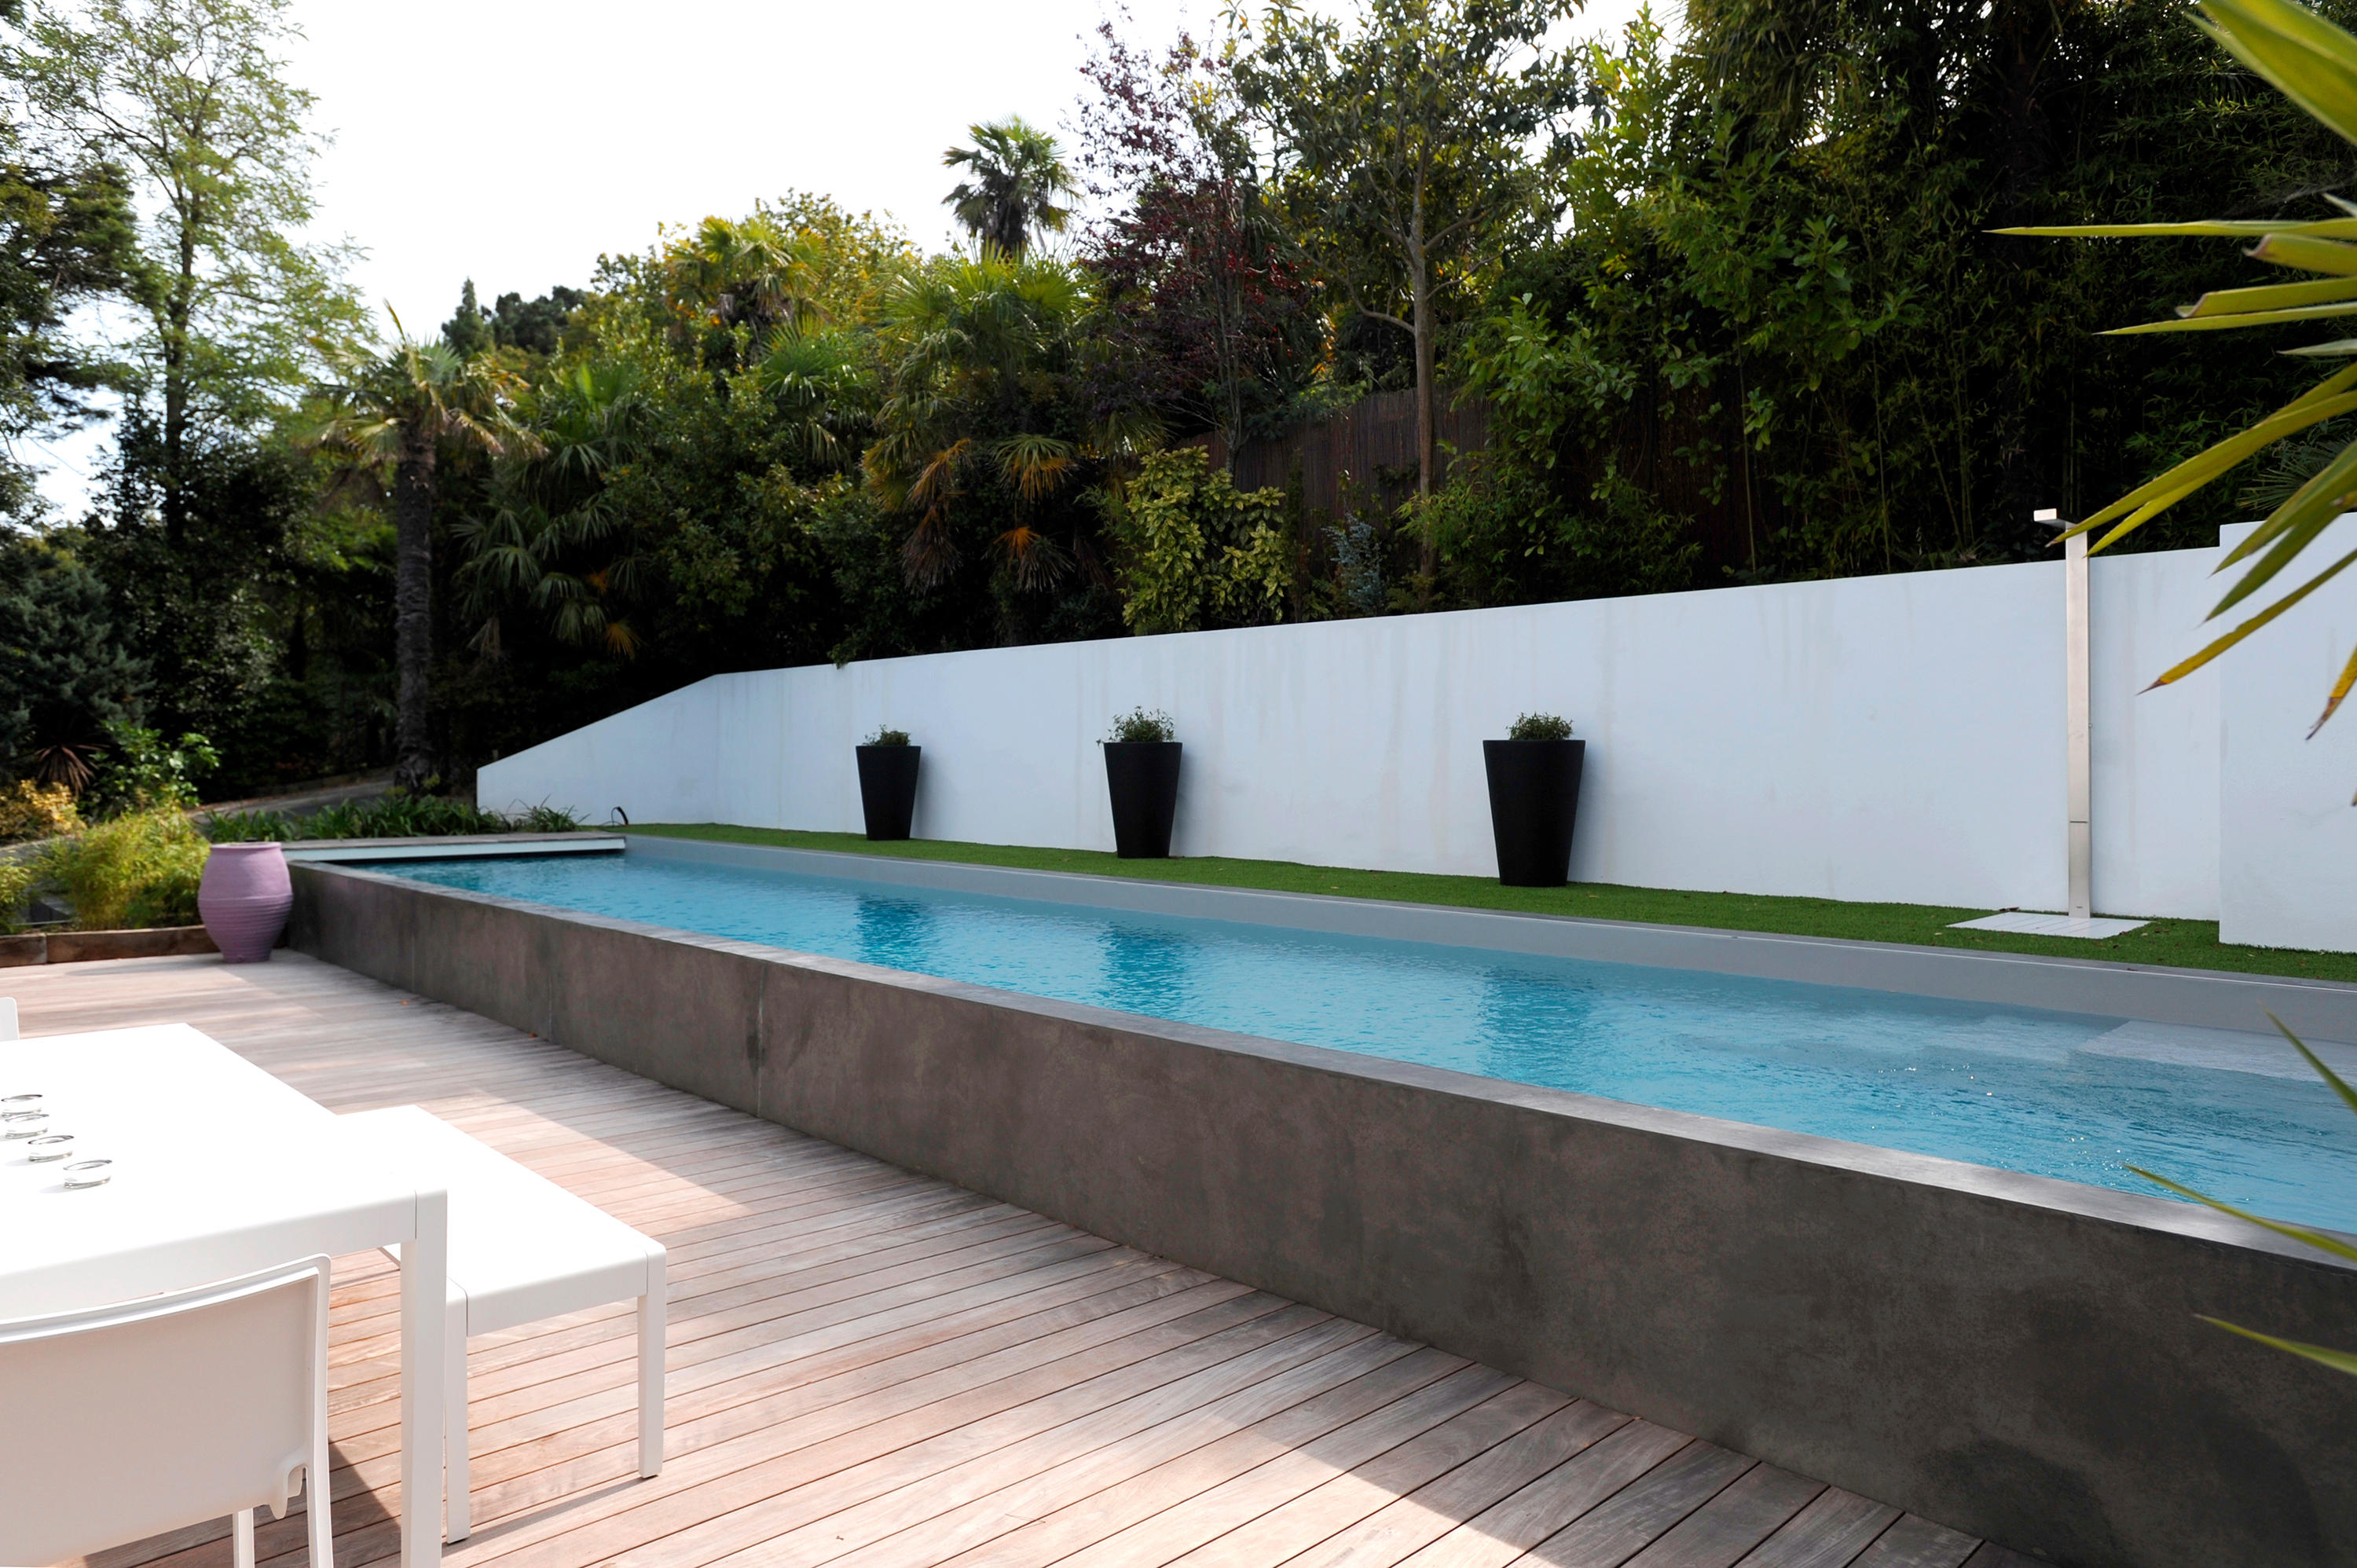 Piscine semi enterr e beton fashion designs for Piscines enterrees